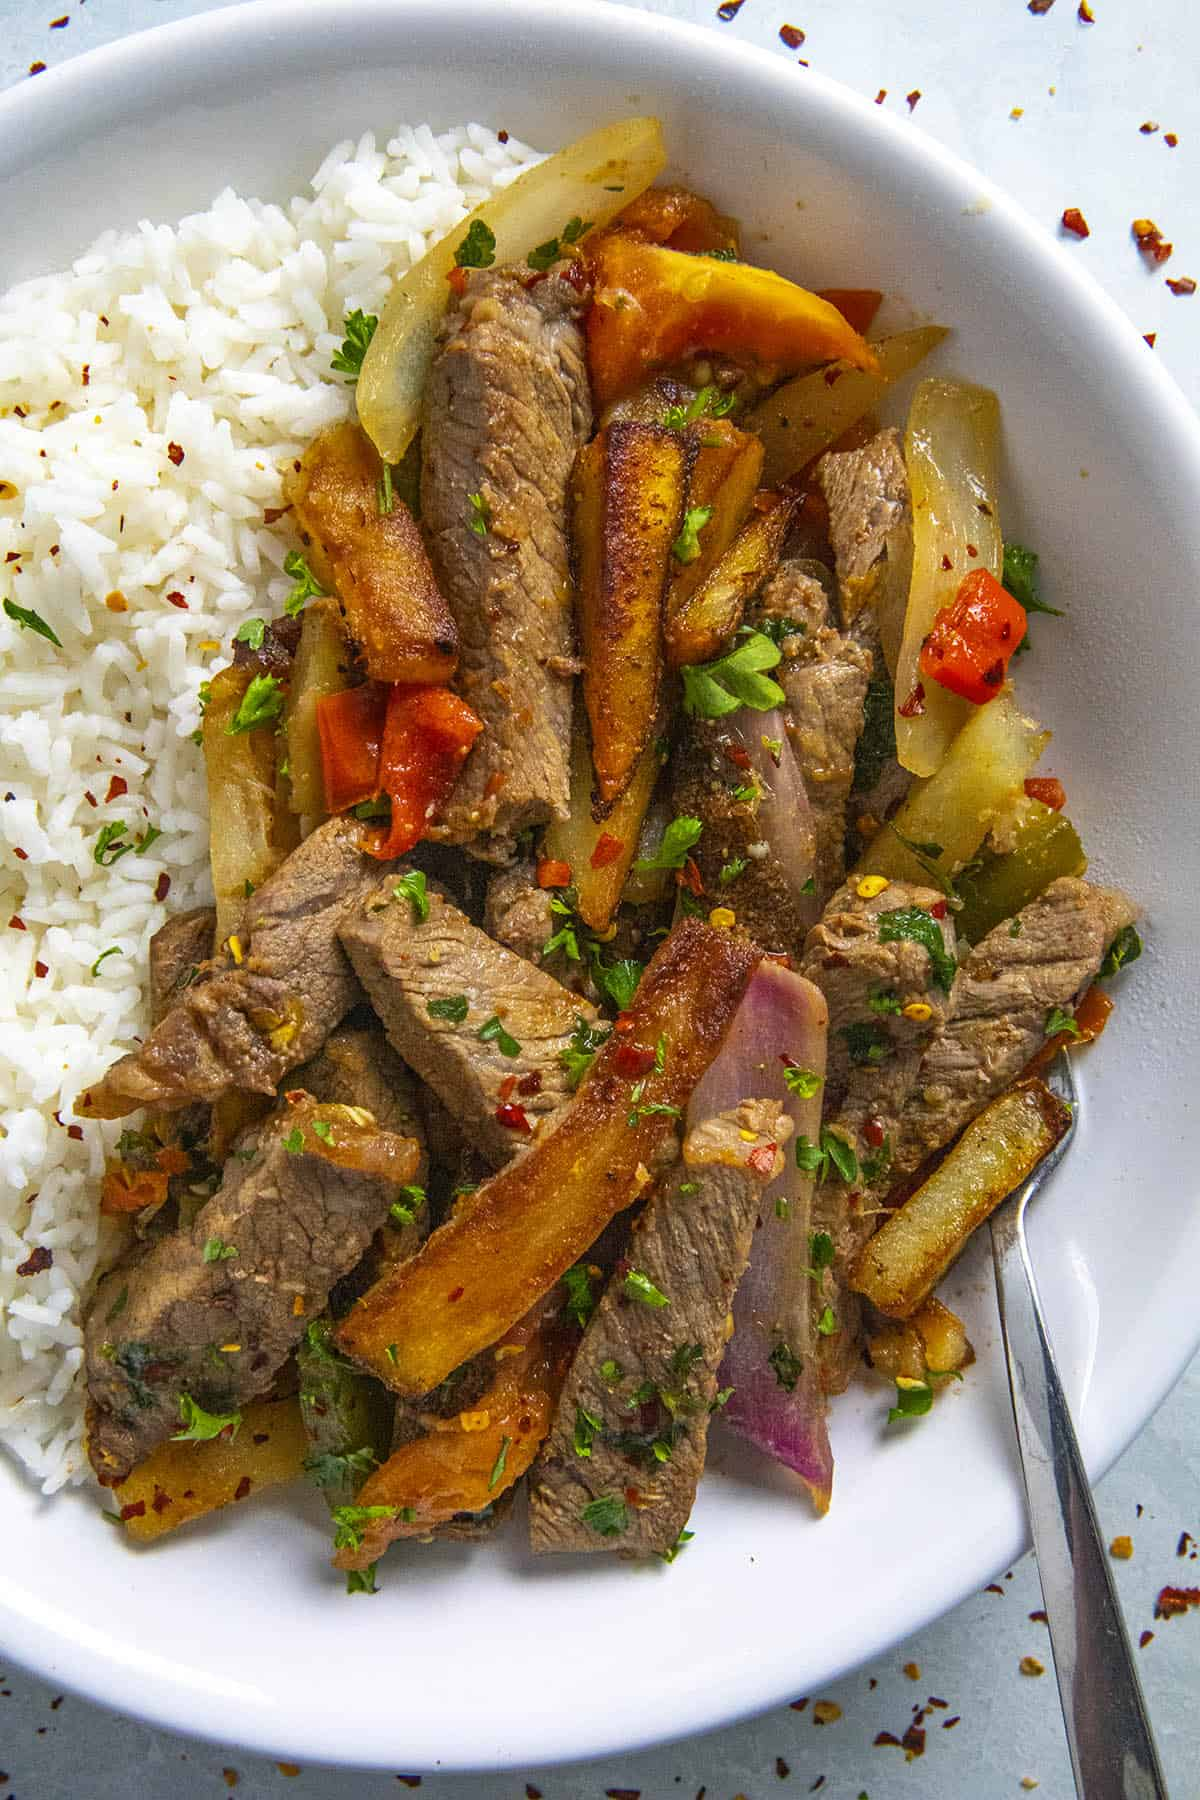 Peruvian Beef Stir Fry (Lomo Saltado) in a bow over rice with lots of beef and french fries